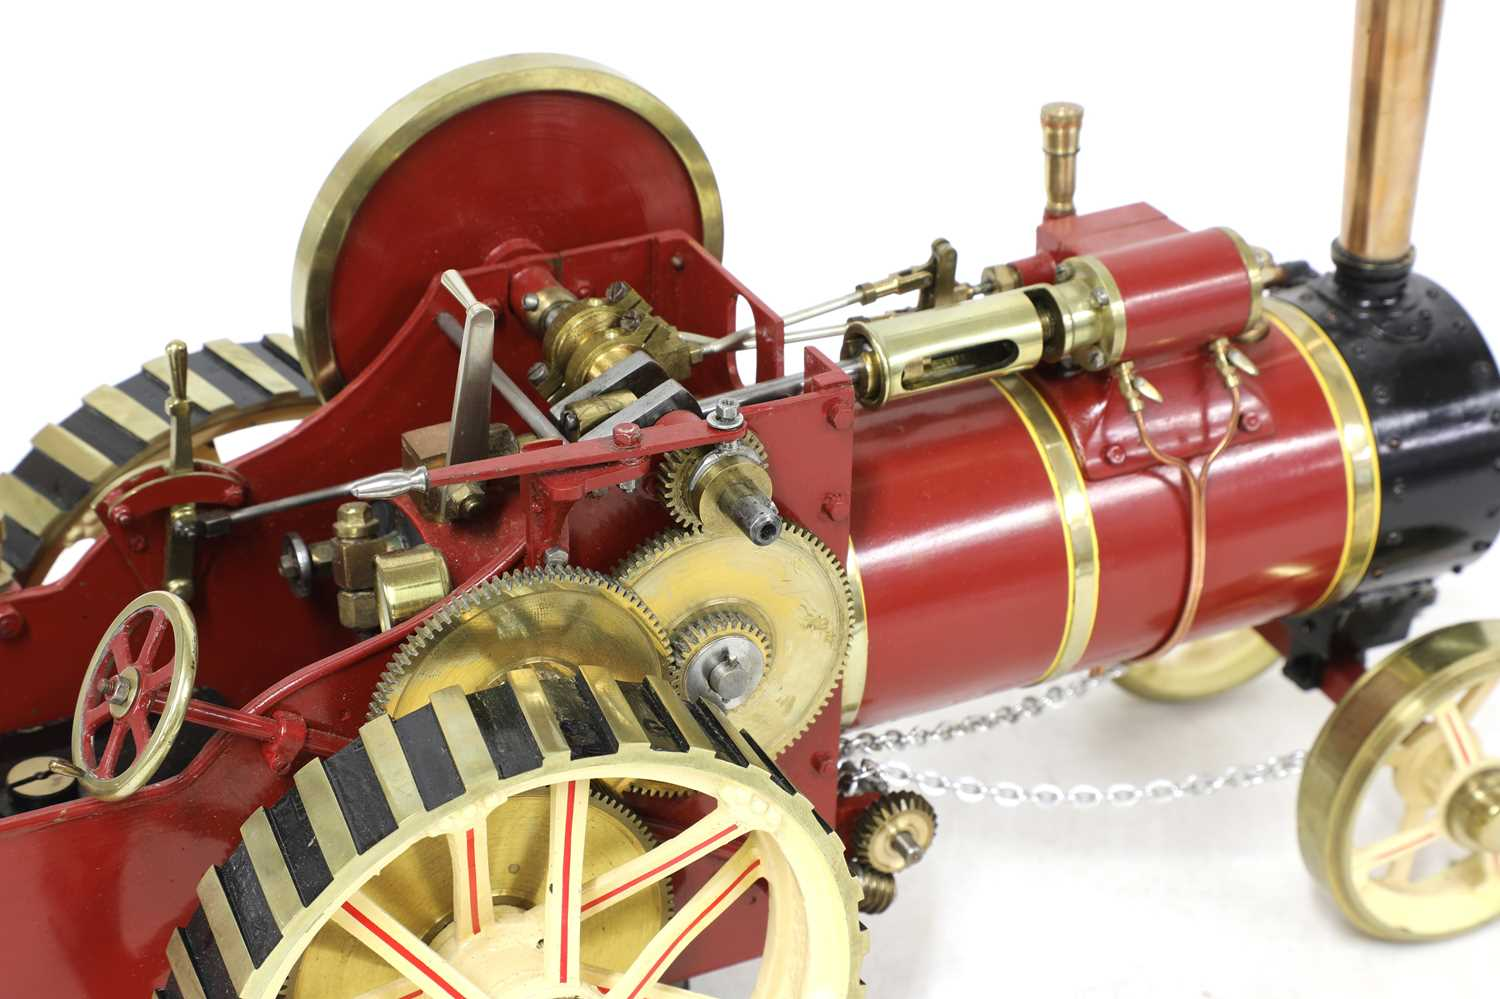 A ¾in scale model Burrell-type live steam traction engine, - Image 6 of 7